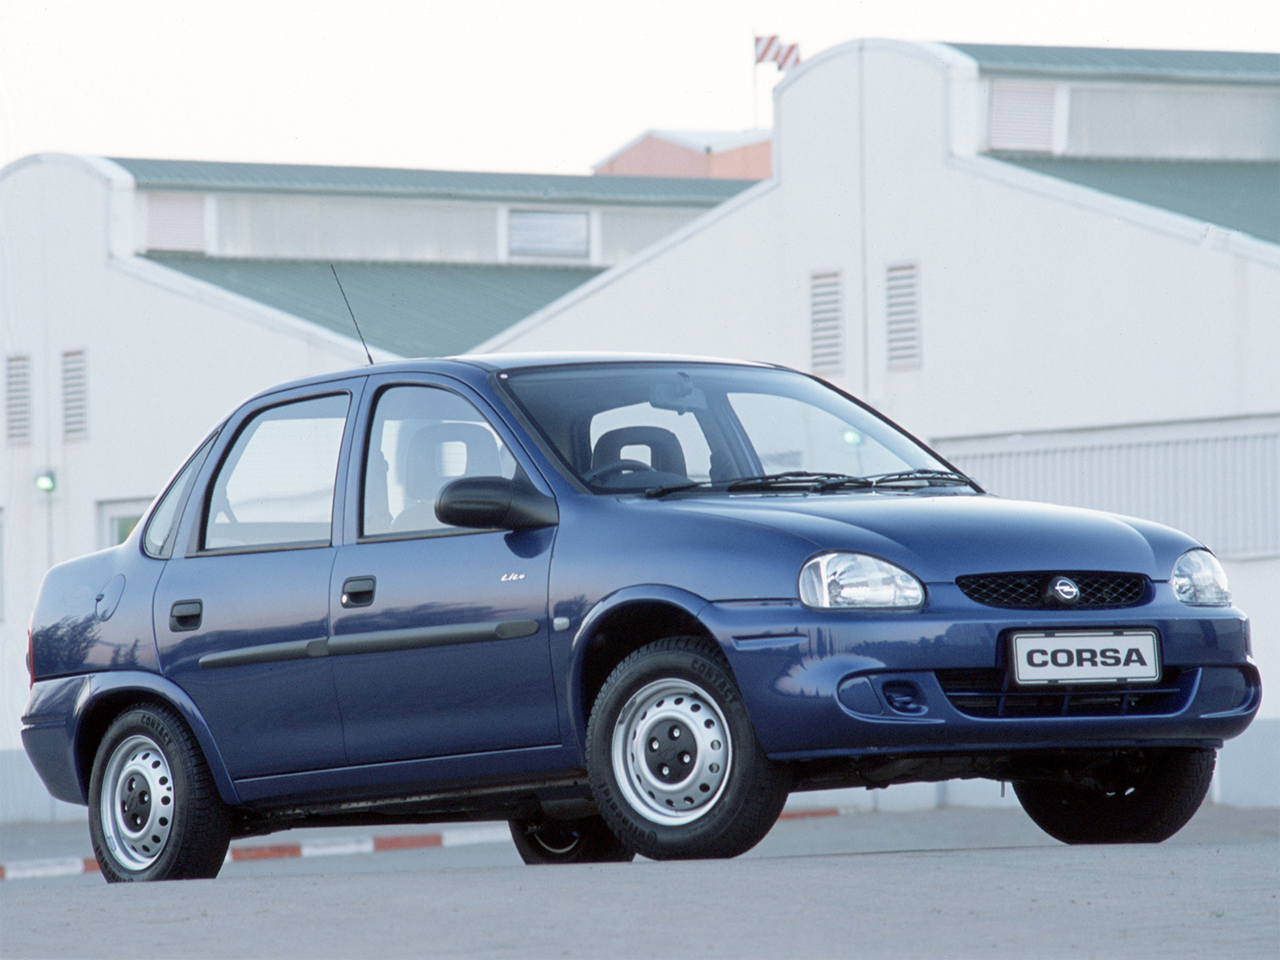 opel corsa 1998 technical specifications interior and exterior photo. Black Bedroom Furniture Sets. Home Design Ideas